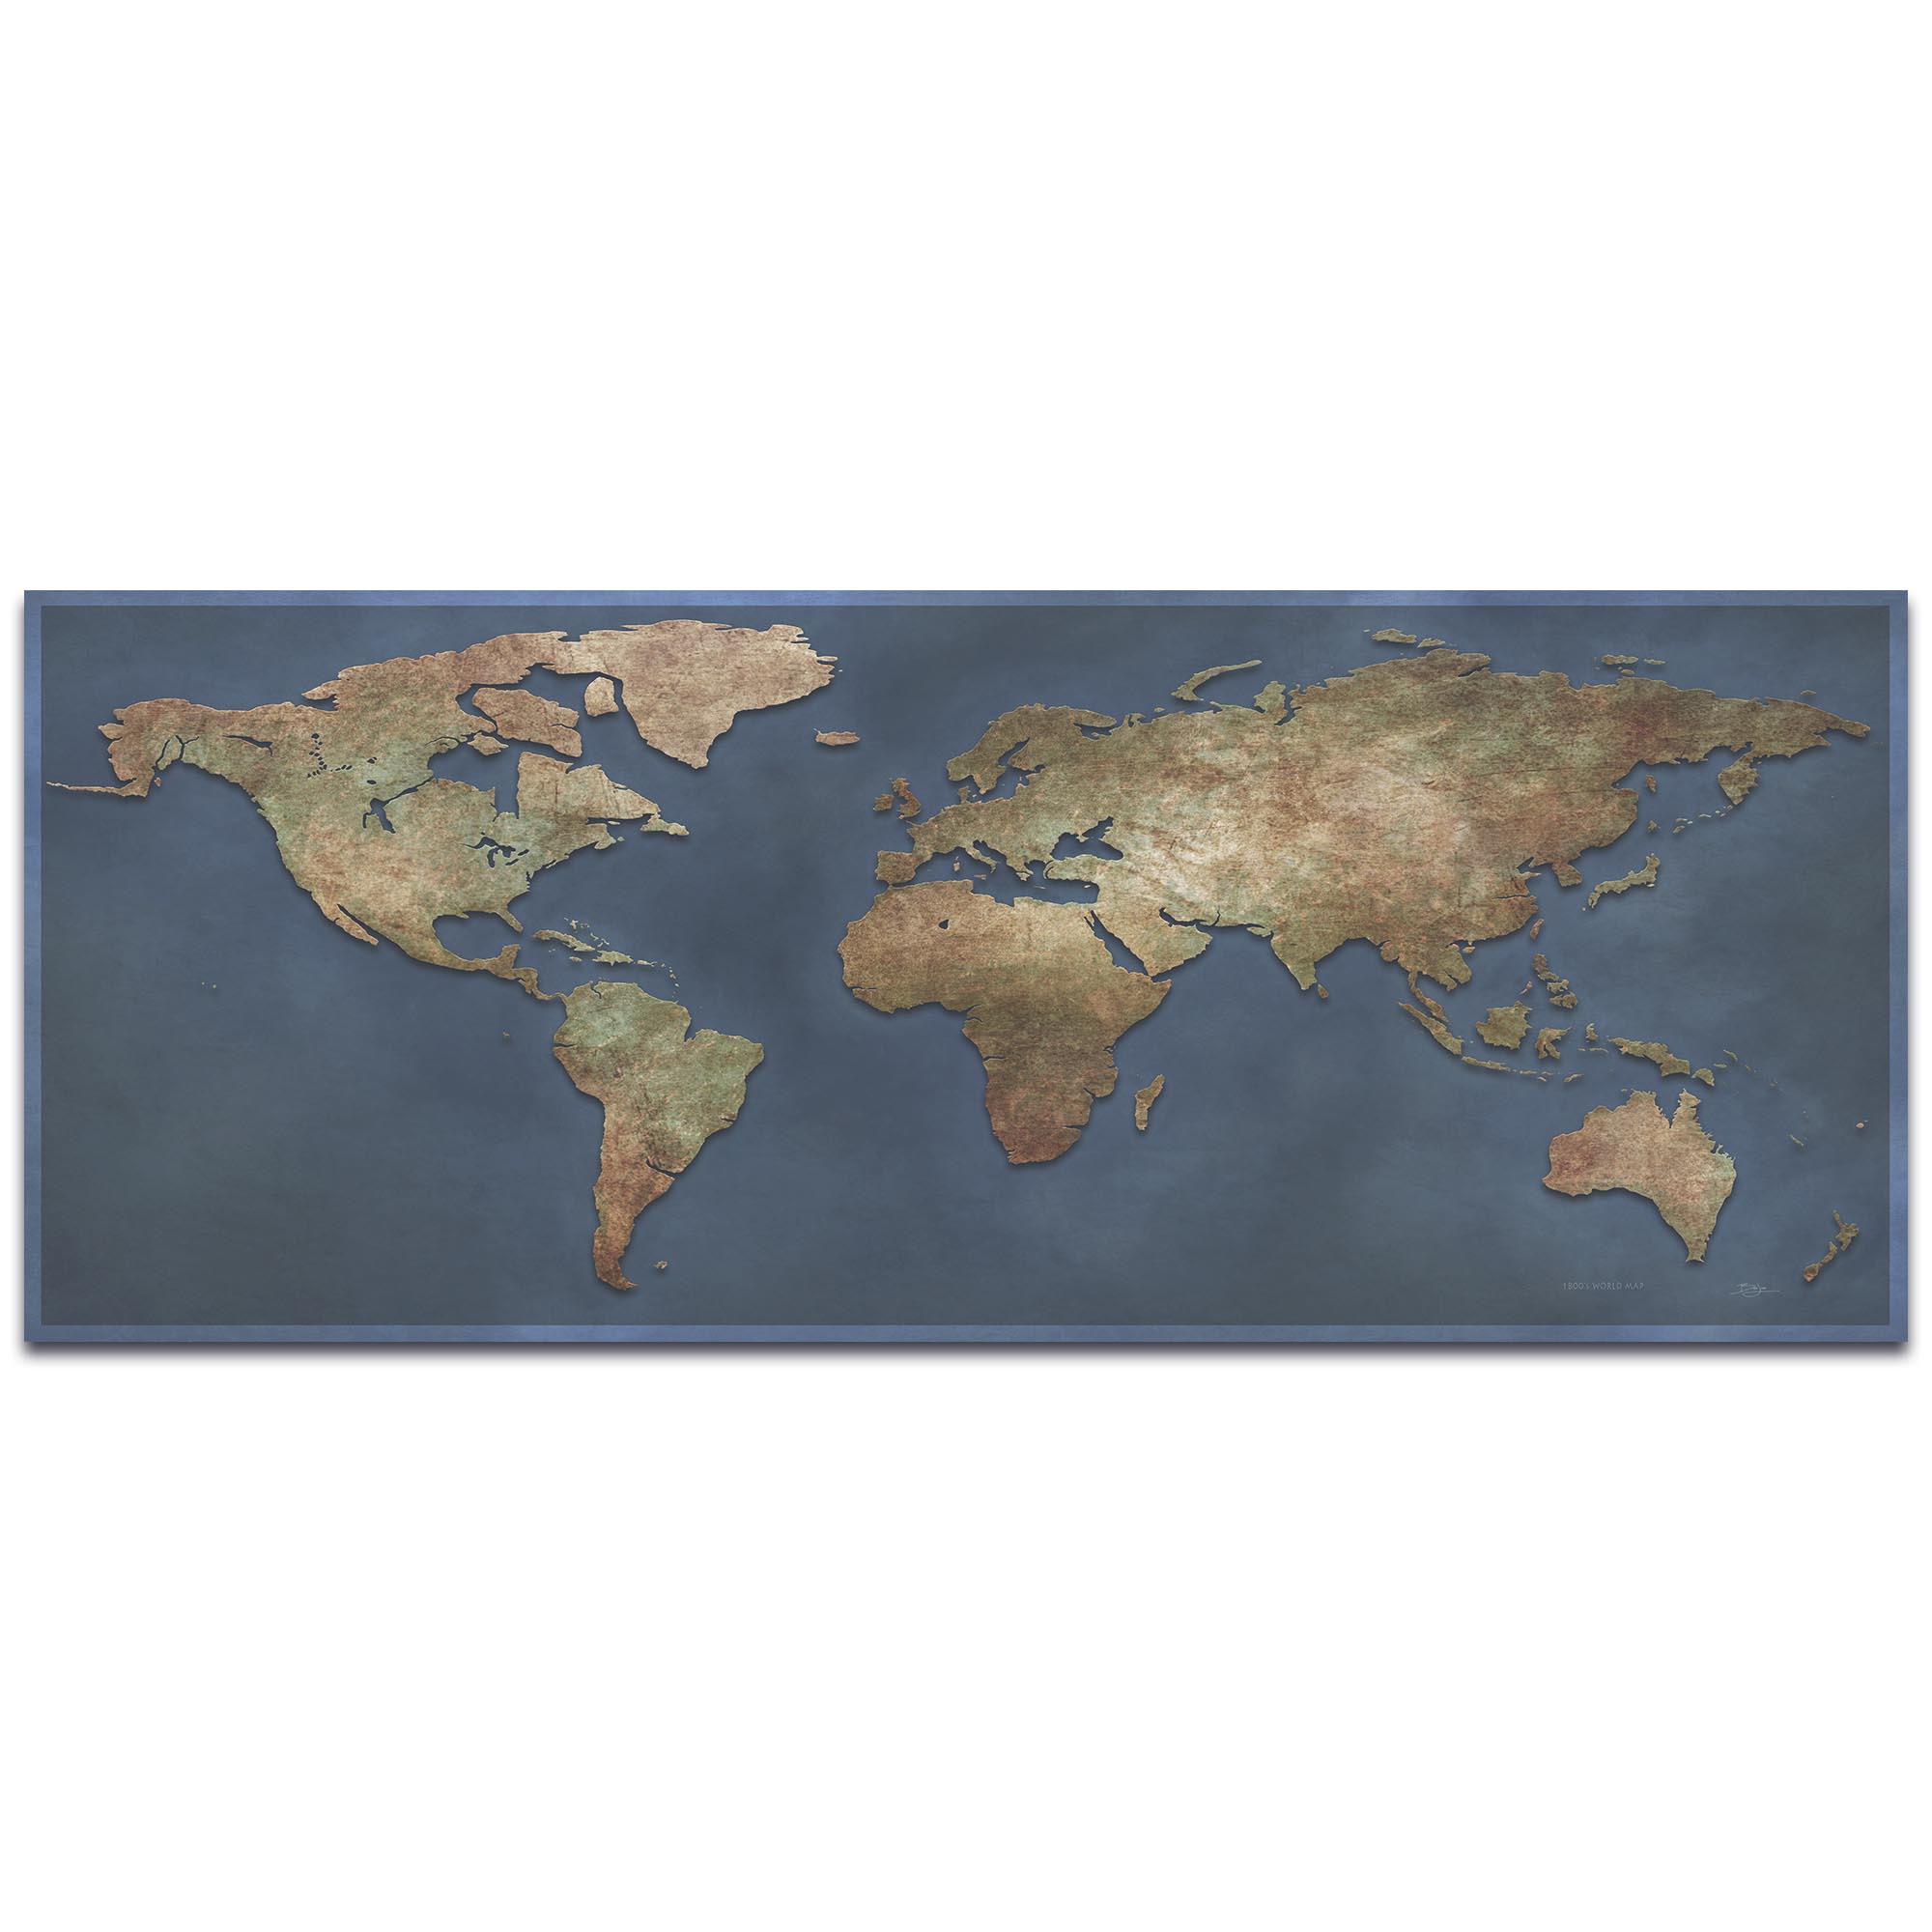 World Map Art '1800s World Map' - Old World Wall Decor on Metal or Acrylic